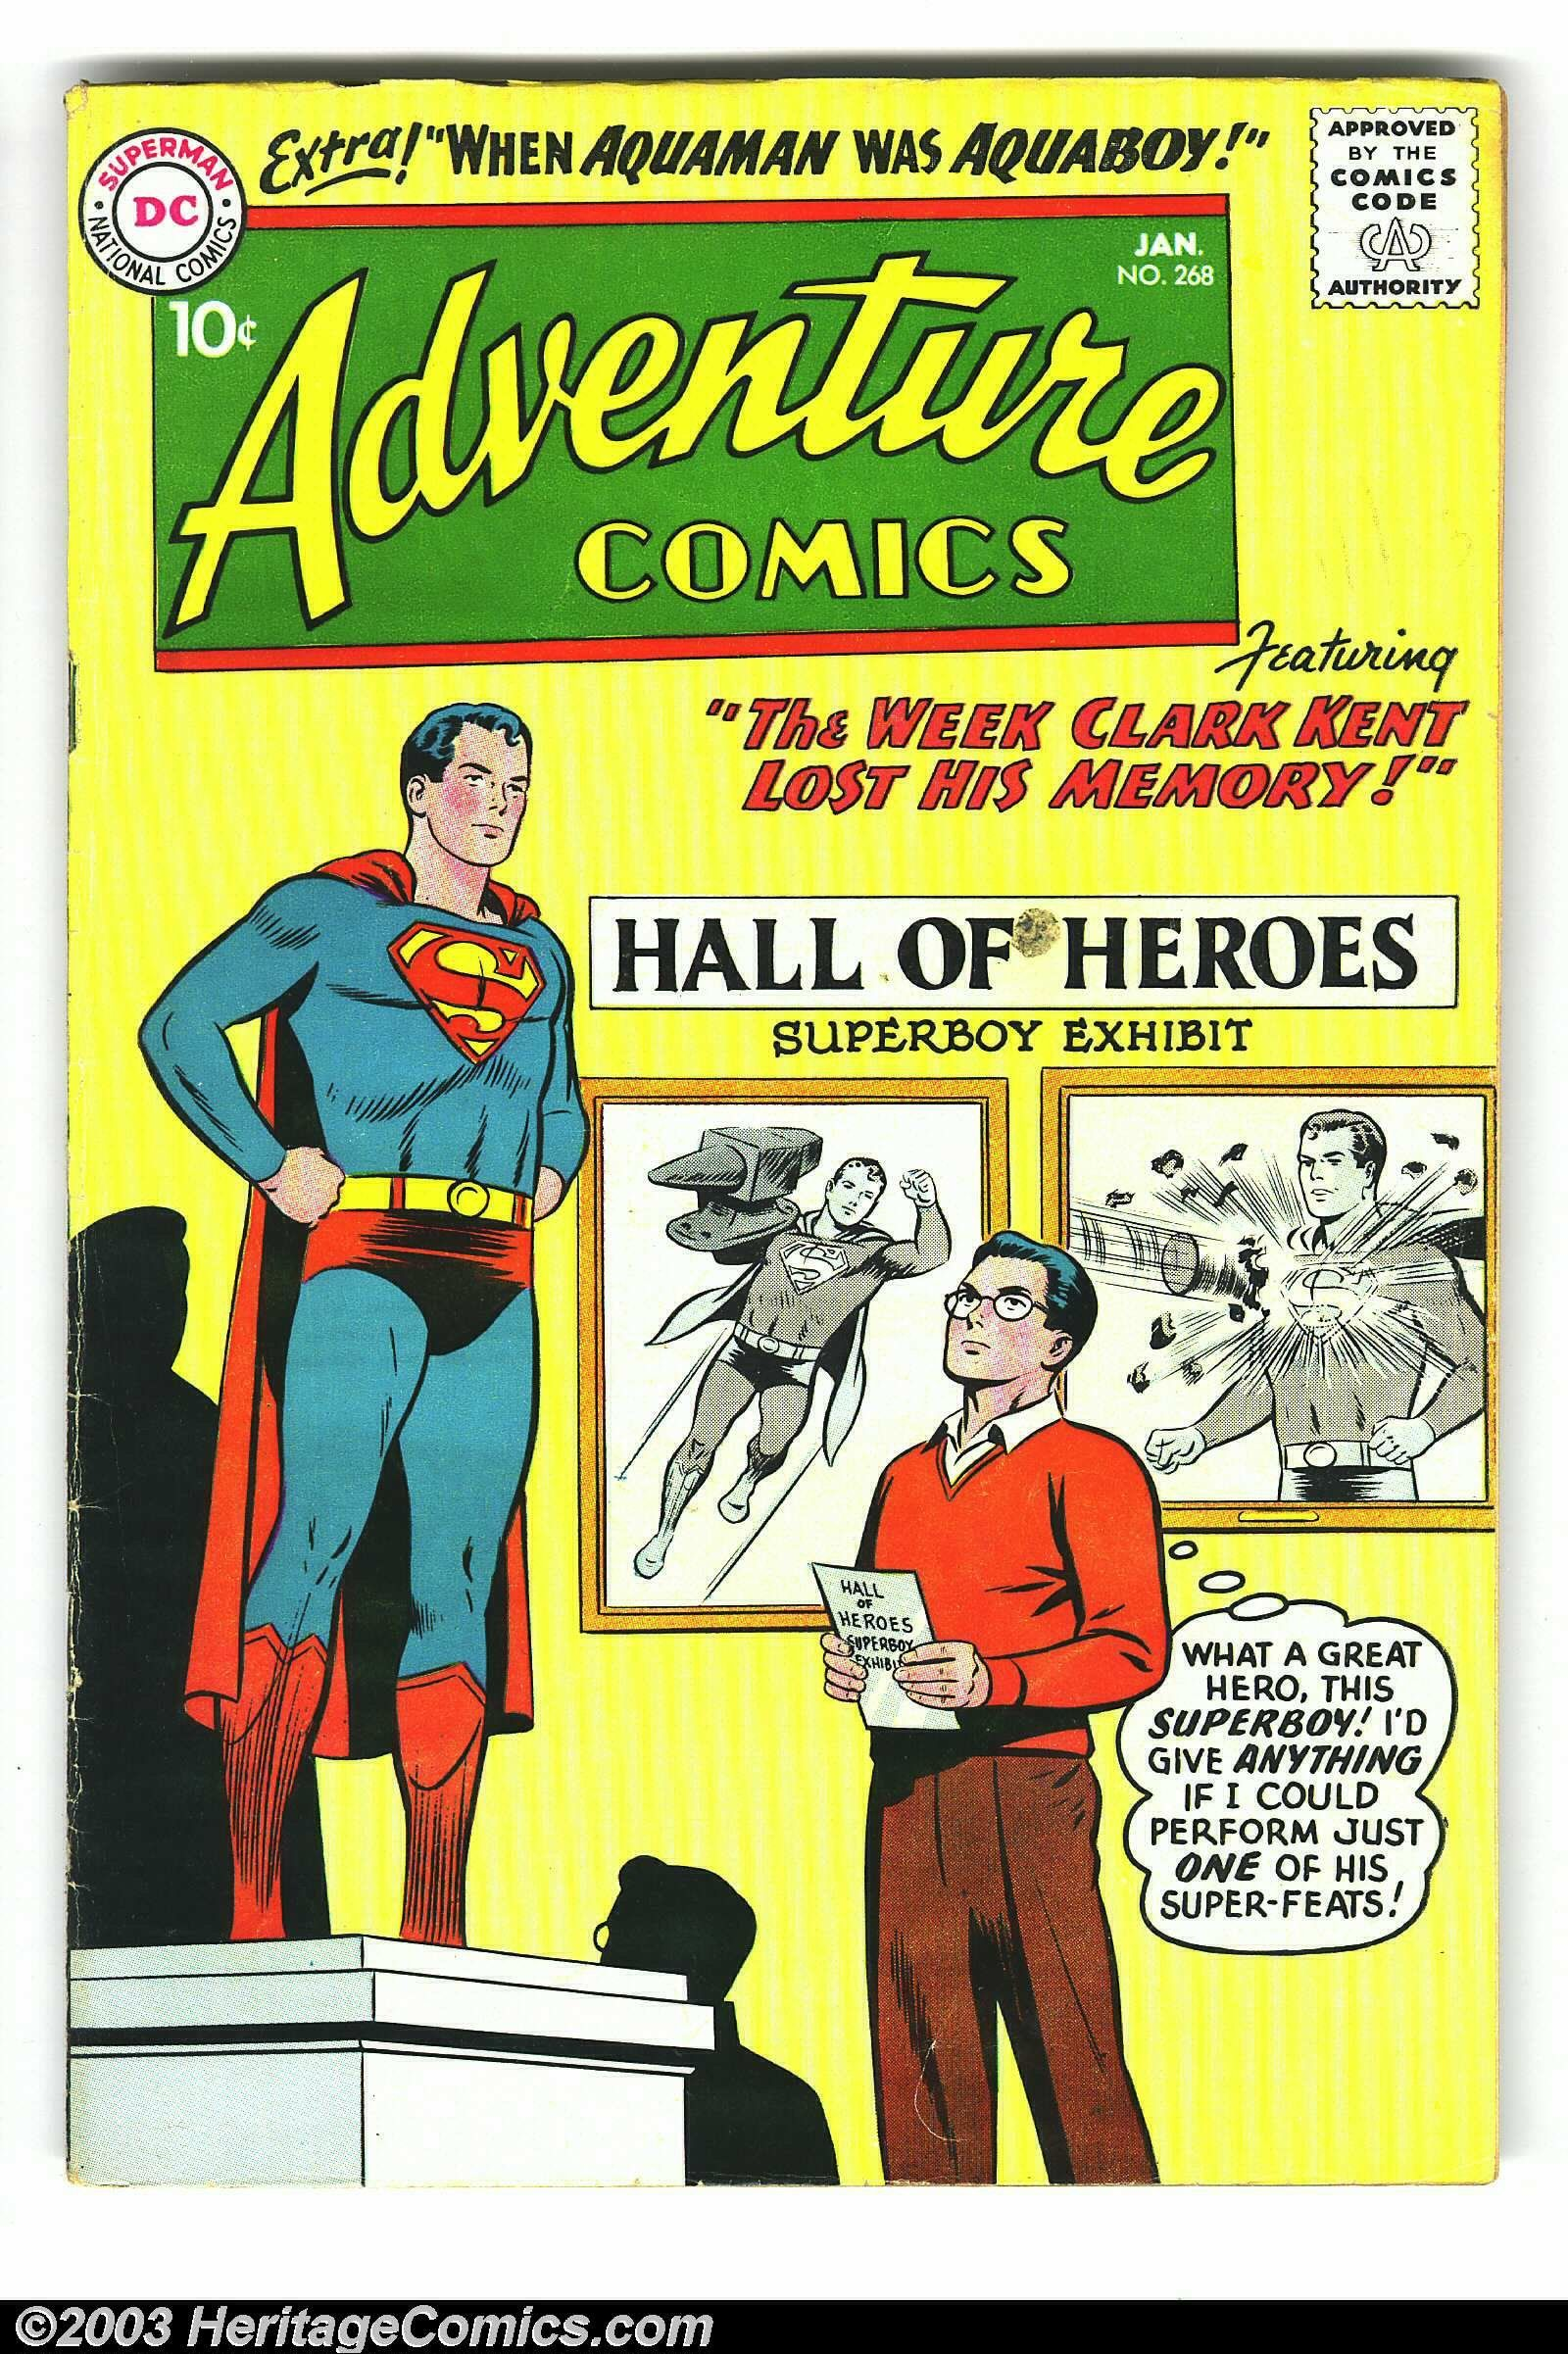 Adventure Comics Group (DC, 1956) - Before our comic book heroes ...